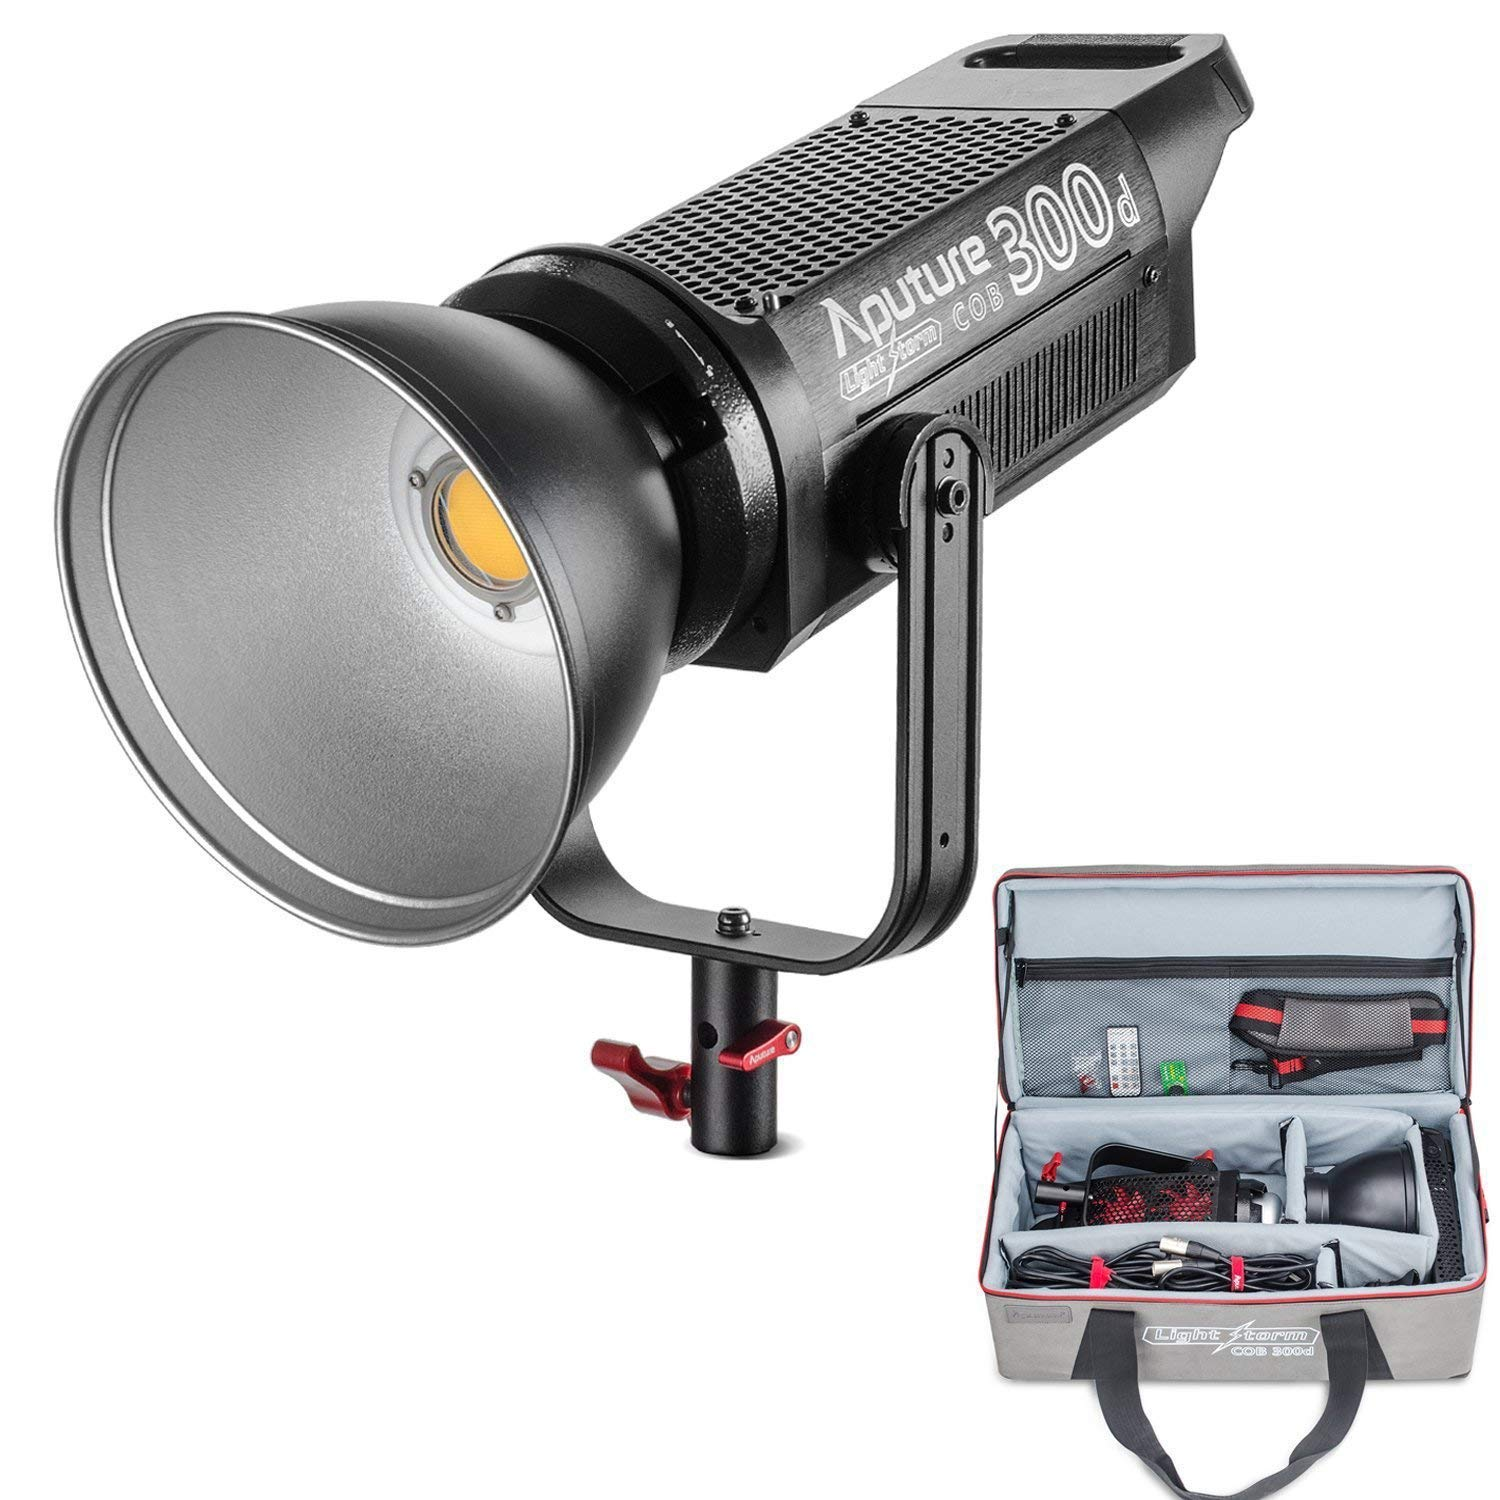 Aputure COB 300D LS C300D Daylight Balanced Led Video Light CRI95+ TLCI96+ 48000lux@0.5M Bowens Mount 2.4G Remote Control 18dB Low Noise V-Mount Plate with Canvas Bag and PERGEAR Cleaning Kit by Aputure